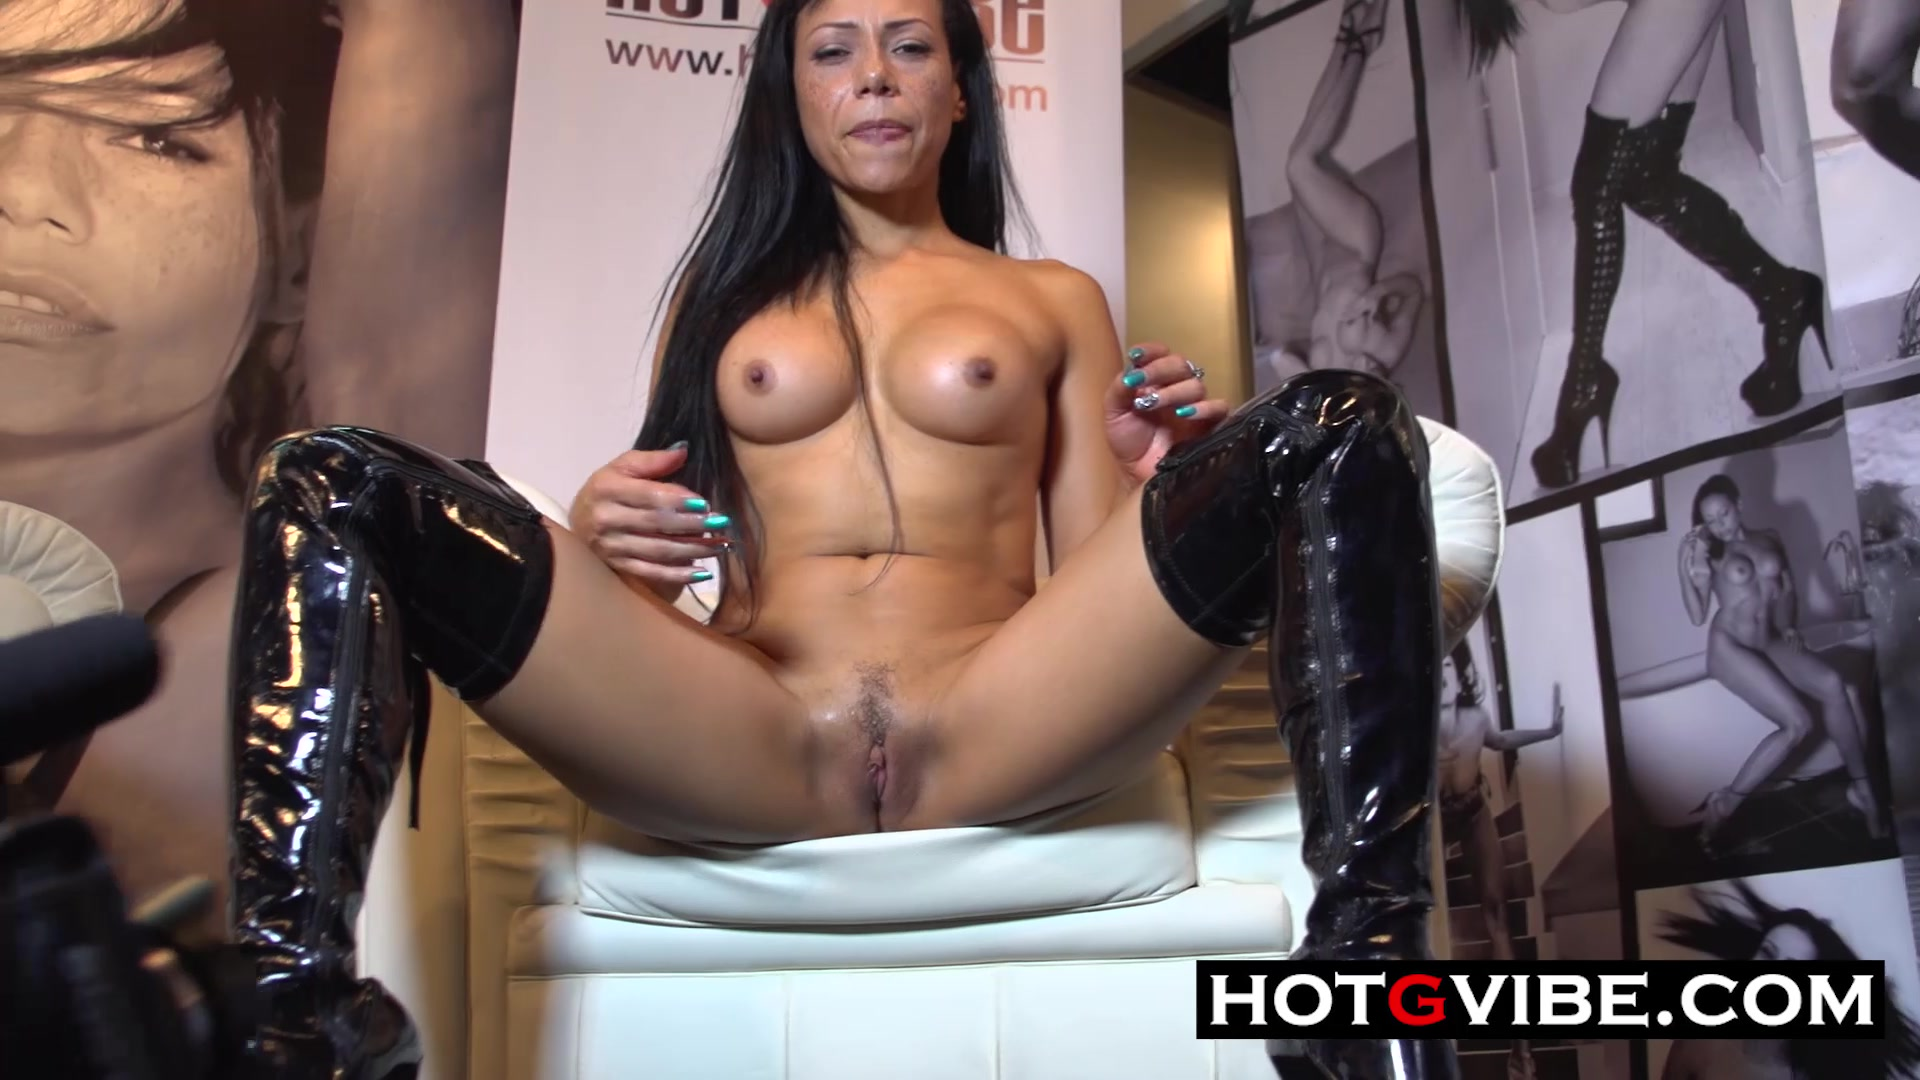 Hot Spanish Lesbians In Public Squirting  Hot G Vibe Xxx -2327